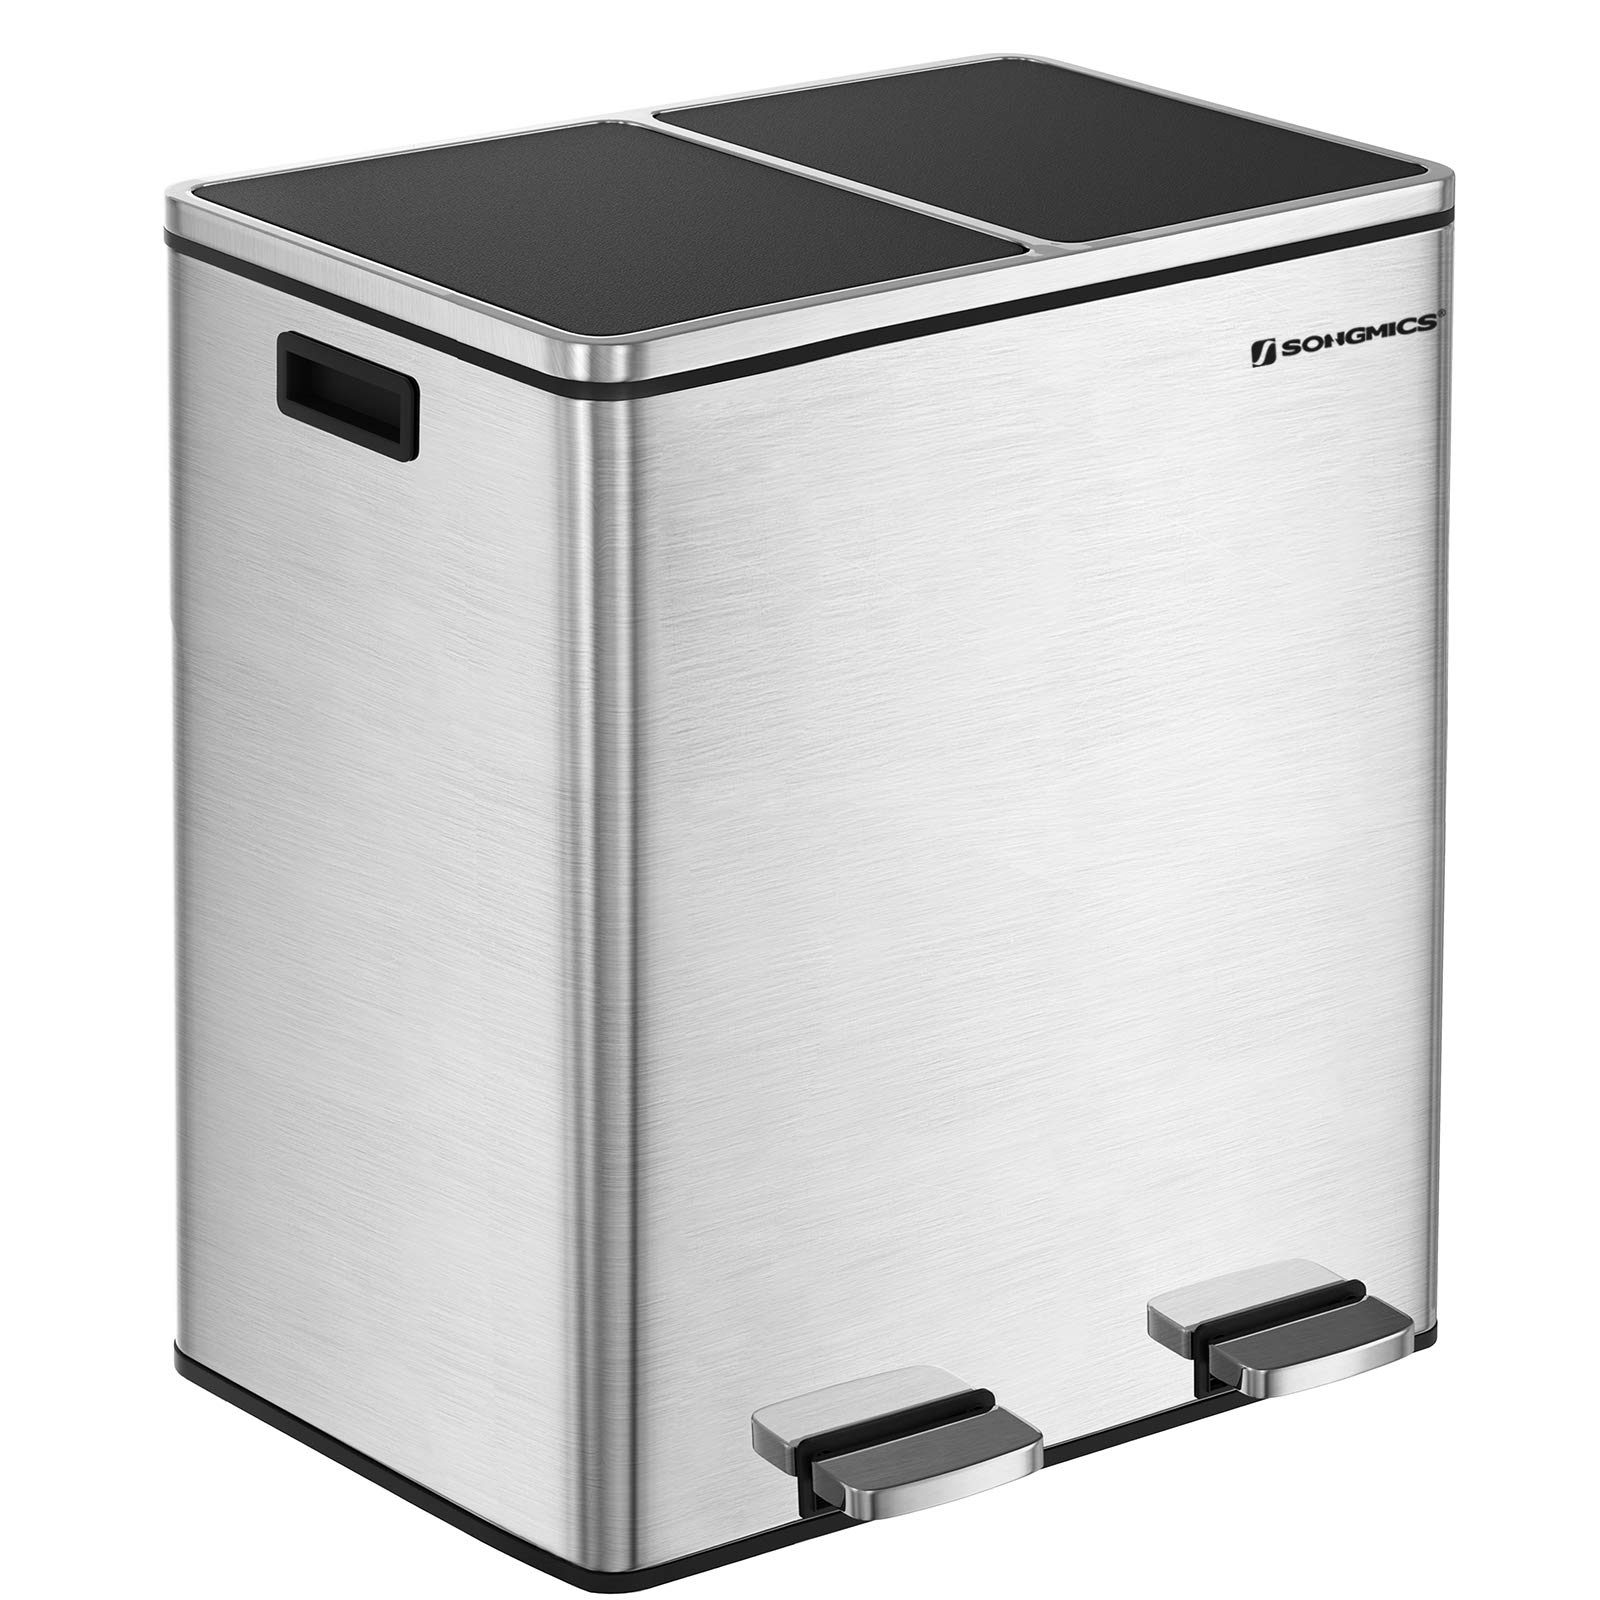 SONGMICS 16 Gallon Step Trash Can, Double Recycle Pedal Bin, 2 x 30L Garbage Bin with Plastic Inner Buckets and Carry Handles, Fingerprint Proof Stainless Steel, Slow Close ULTB60NL by SONGMICS